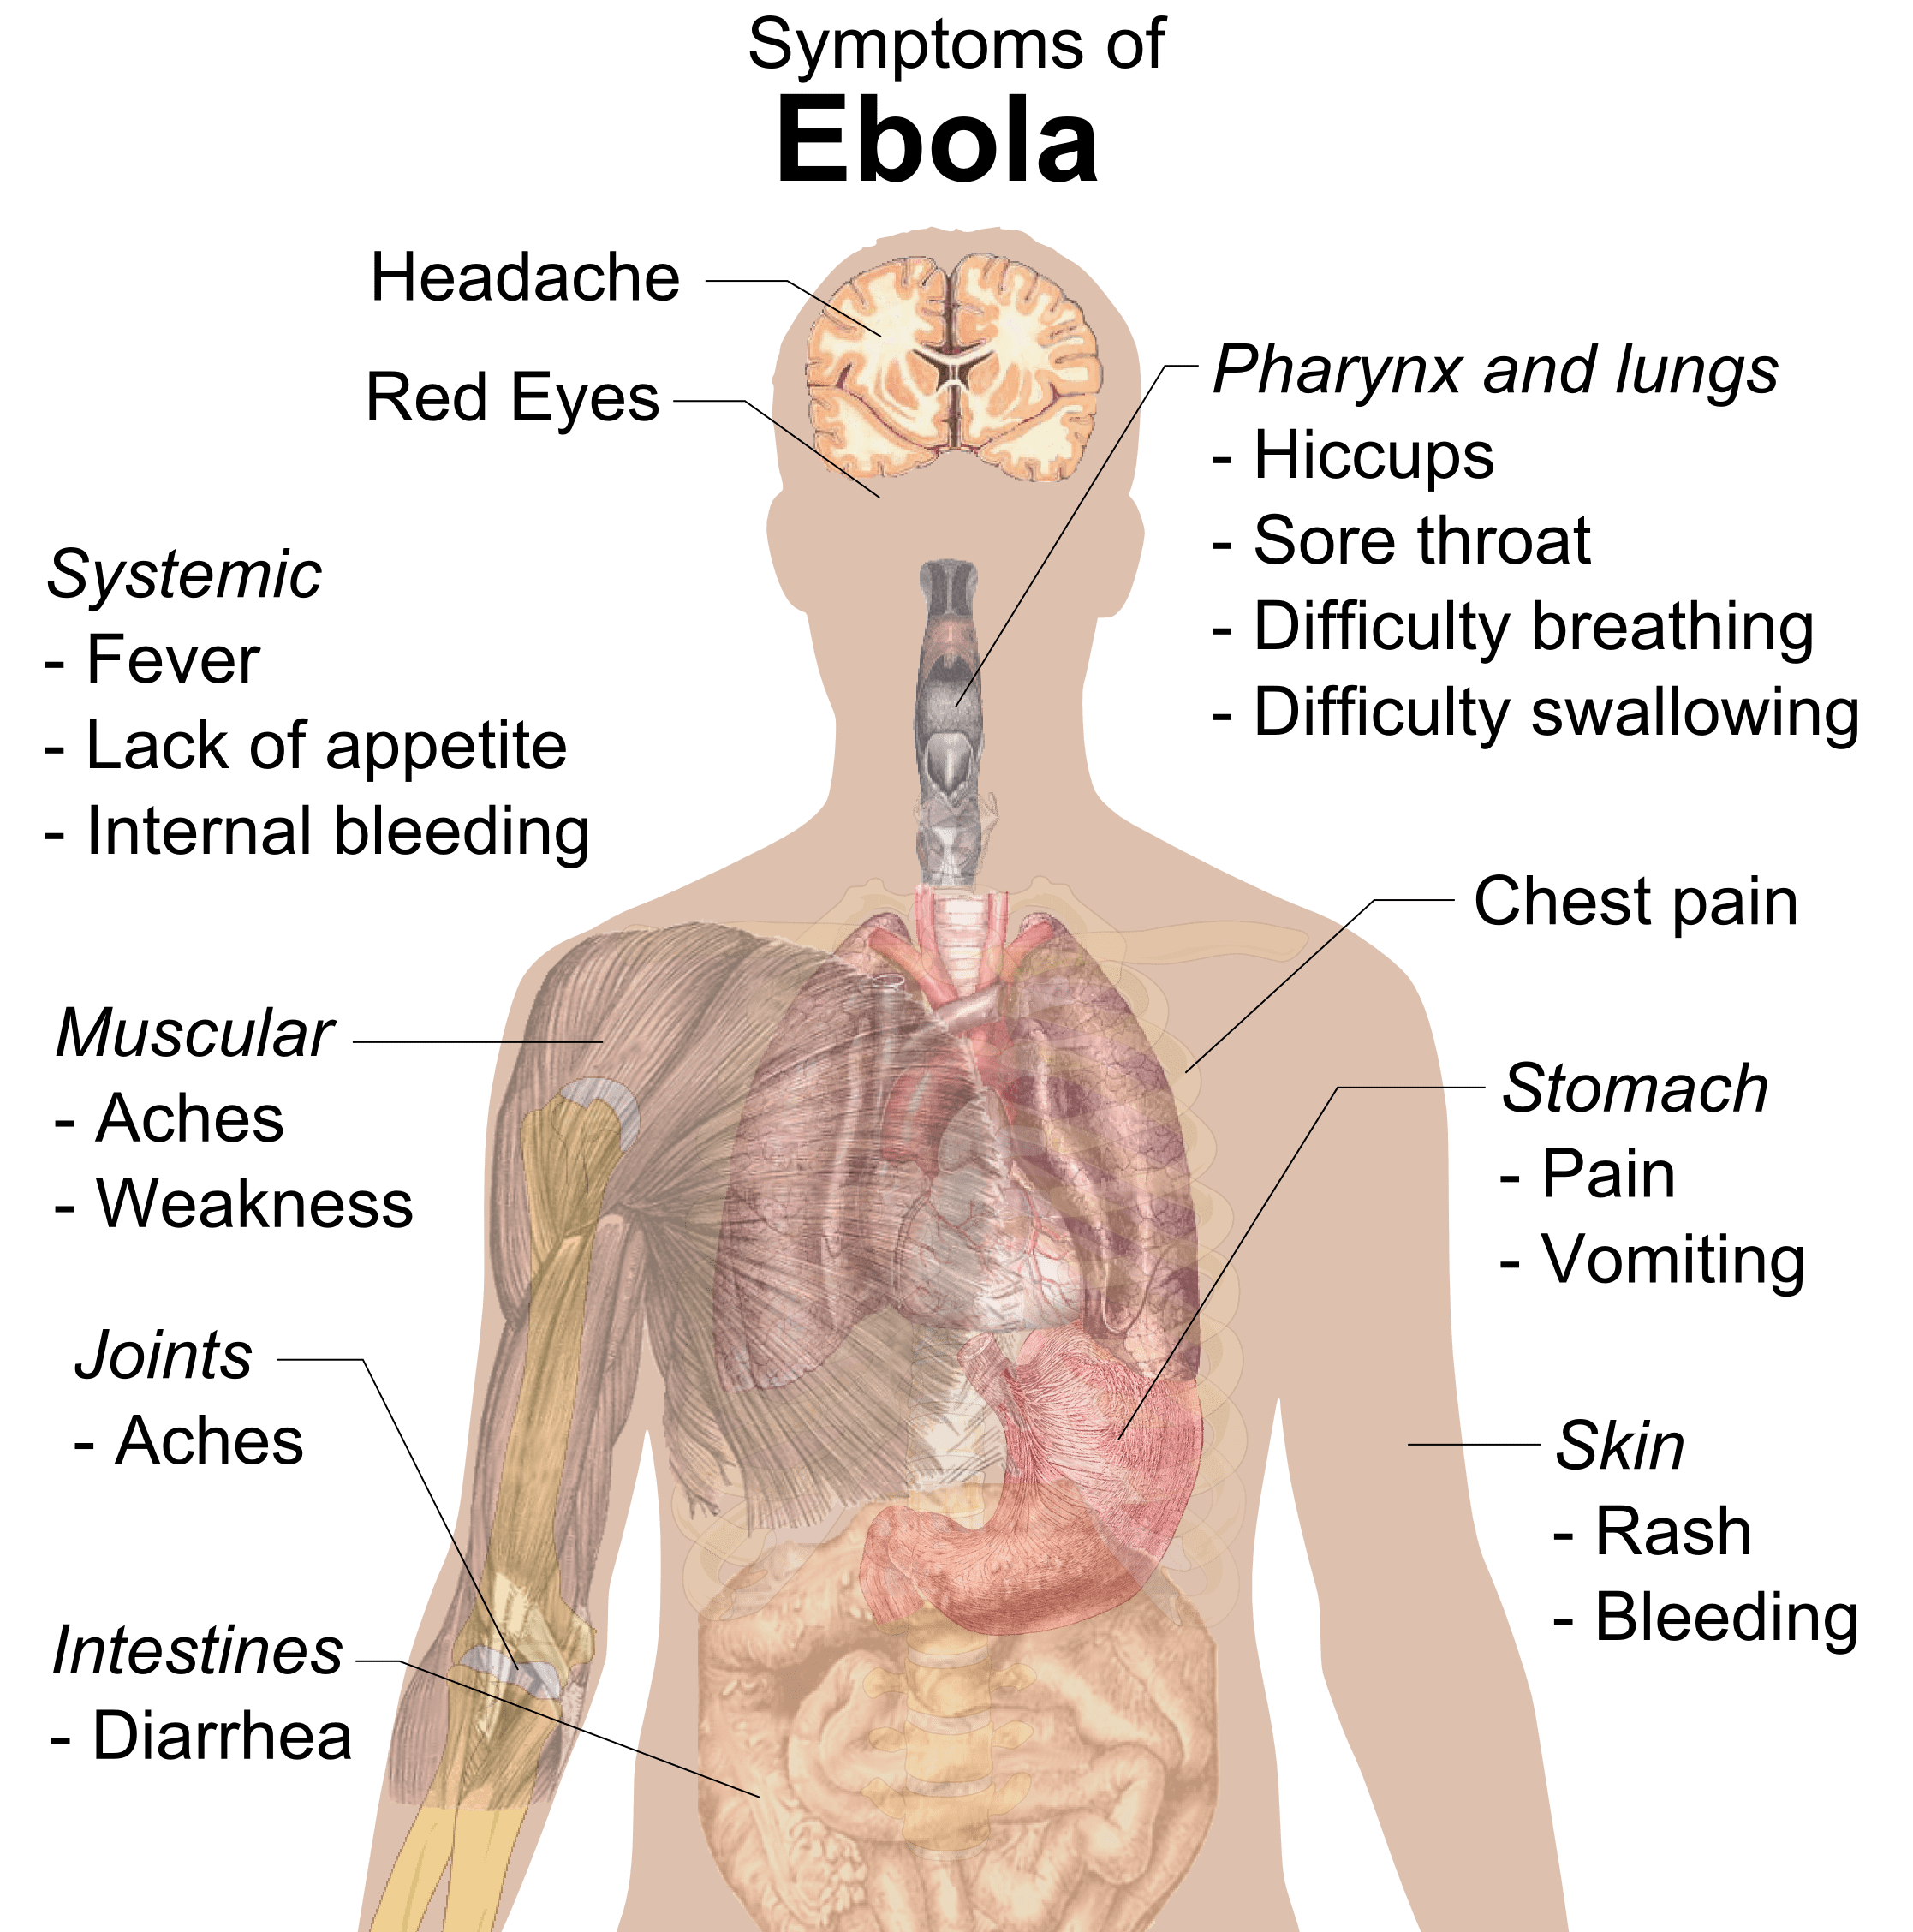 https://i2.wp.com/upload.wikimedia.org/wikipedia/commons/4/4a/Symptoms_of_ebola.png